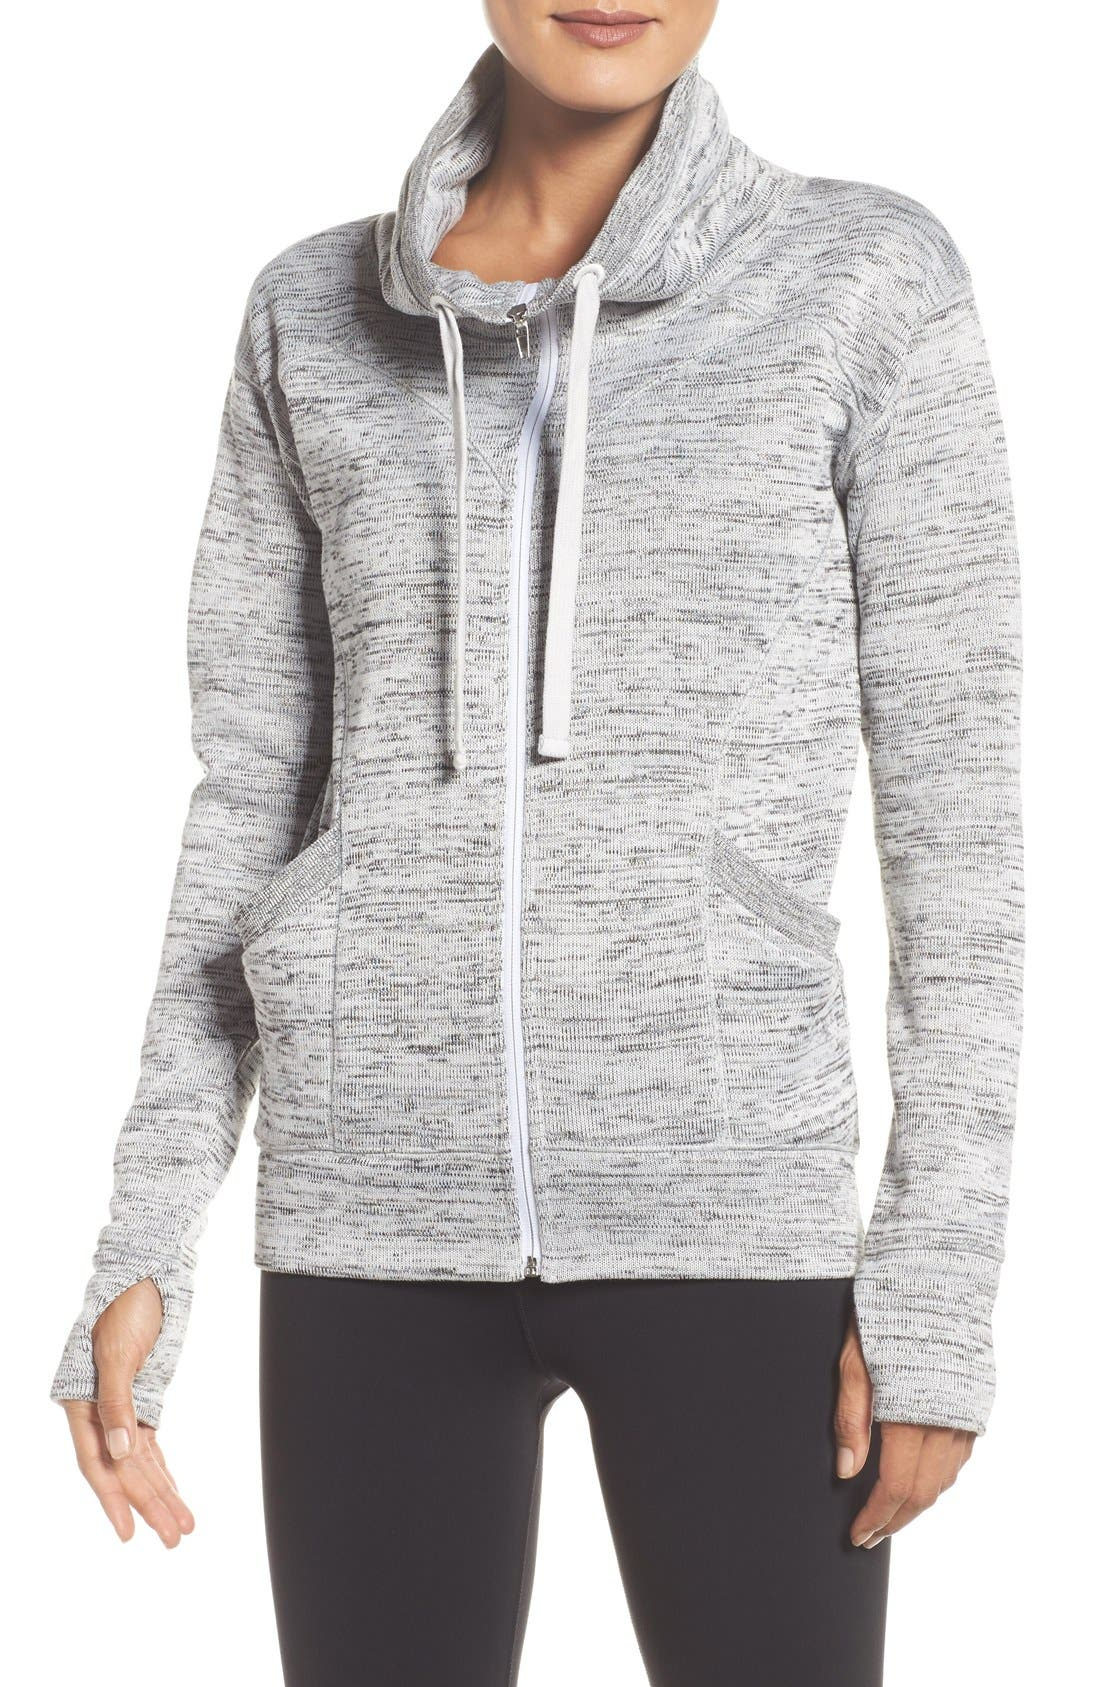 Main Image - Zella Cozy to the Core Sweater Jacket